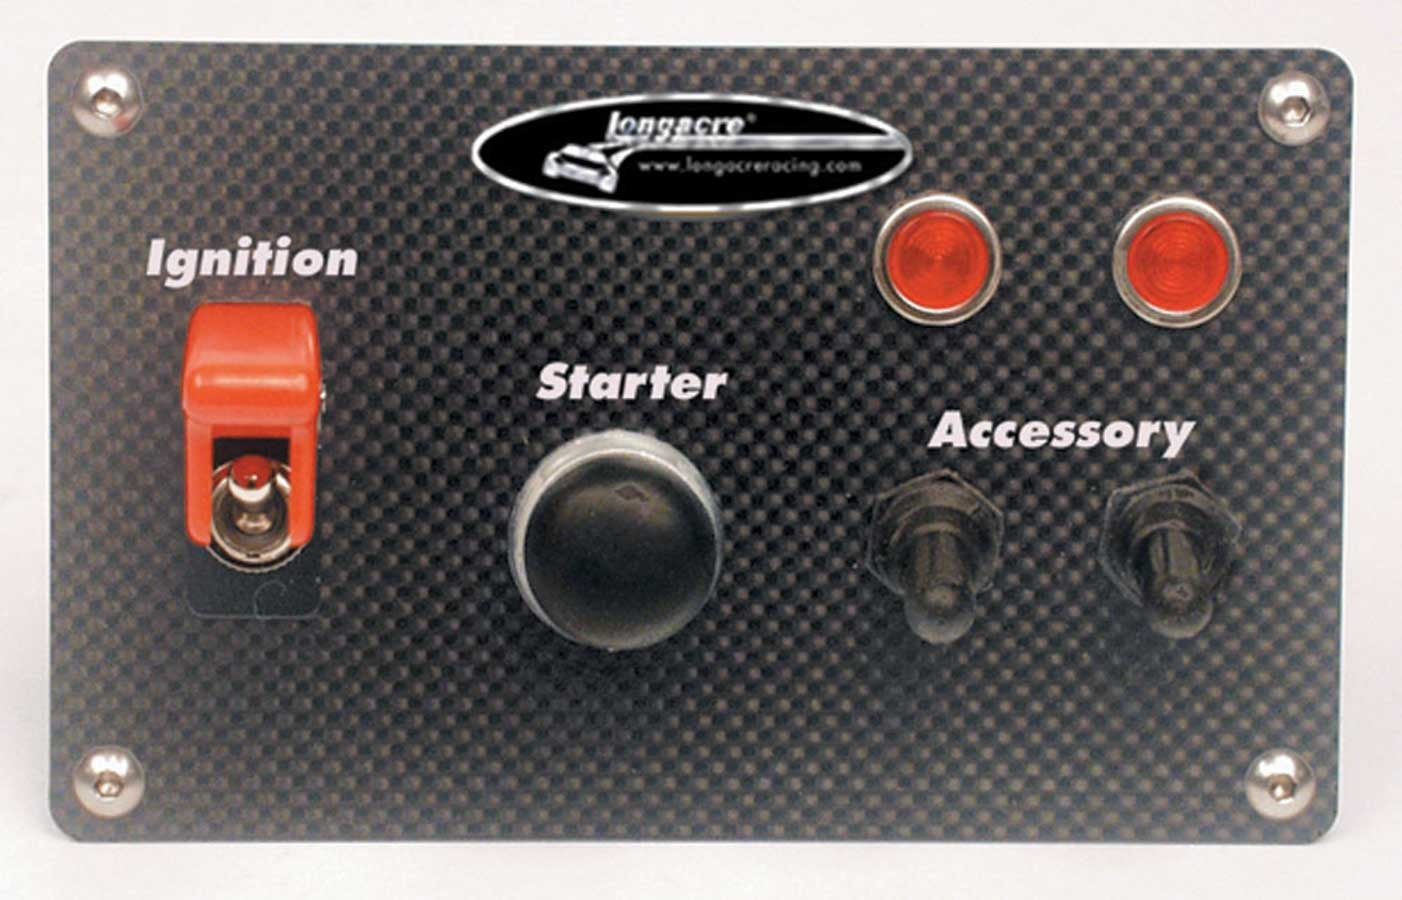 Longacre 52-44535 Switch Panel, Dash Mount, 6-1/2 x 3-1/2 in, 2 Toggles / 1 Momentary Button, Indicator Lights, Carbon Fiber, Kit